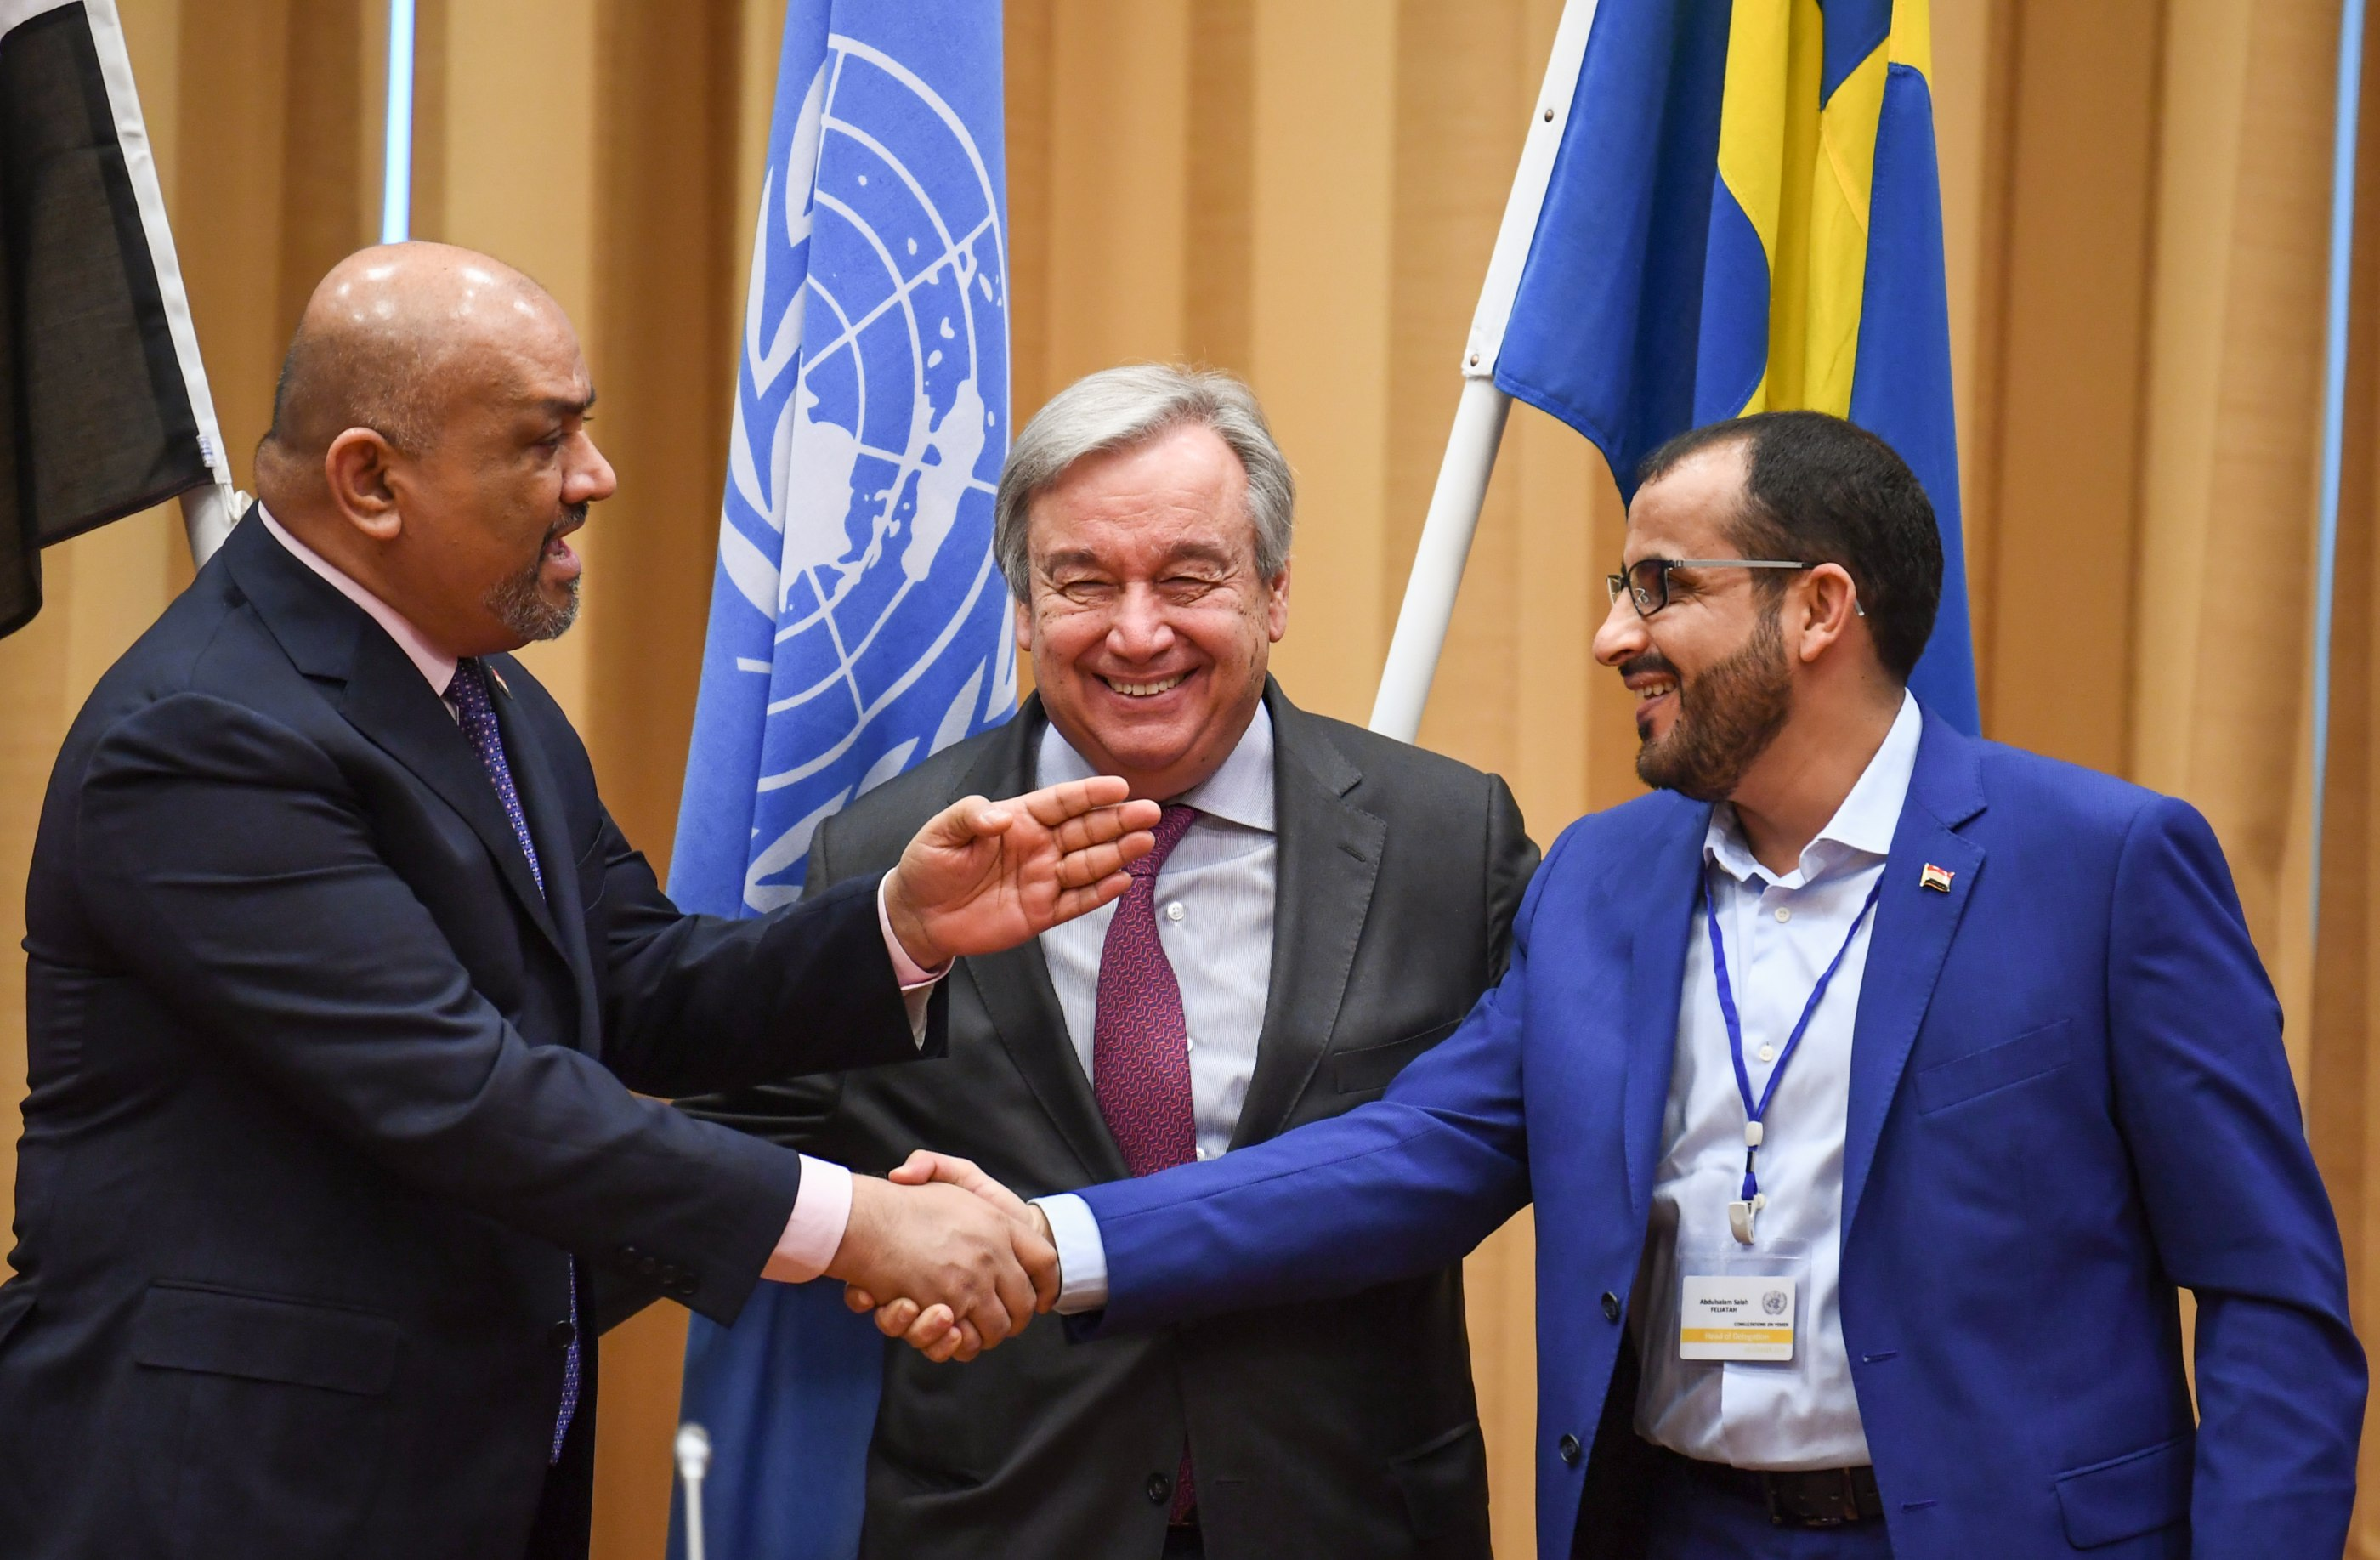 Yemeni government Foreign Minister Khaled al-Yamani, left, and the head rebel negotiator Mohammed Abdelsalam, right, shake hands under the eyes of United Nations Secretary-General Antonio Guterres, centre, during peace consultations taking place at Johannesberg Castle in Rimbo, north of Stockholm, Sweden, on 13 December 2018 (AFP)